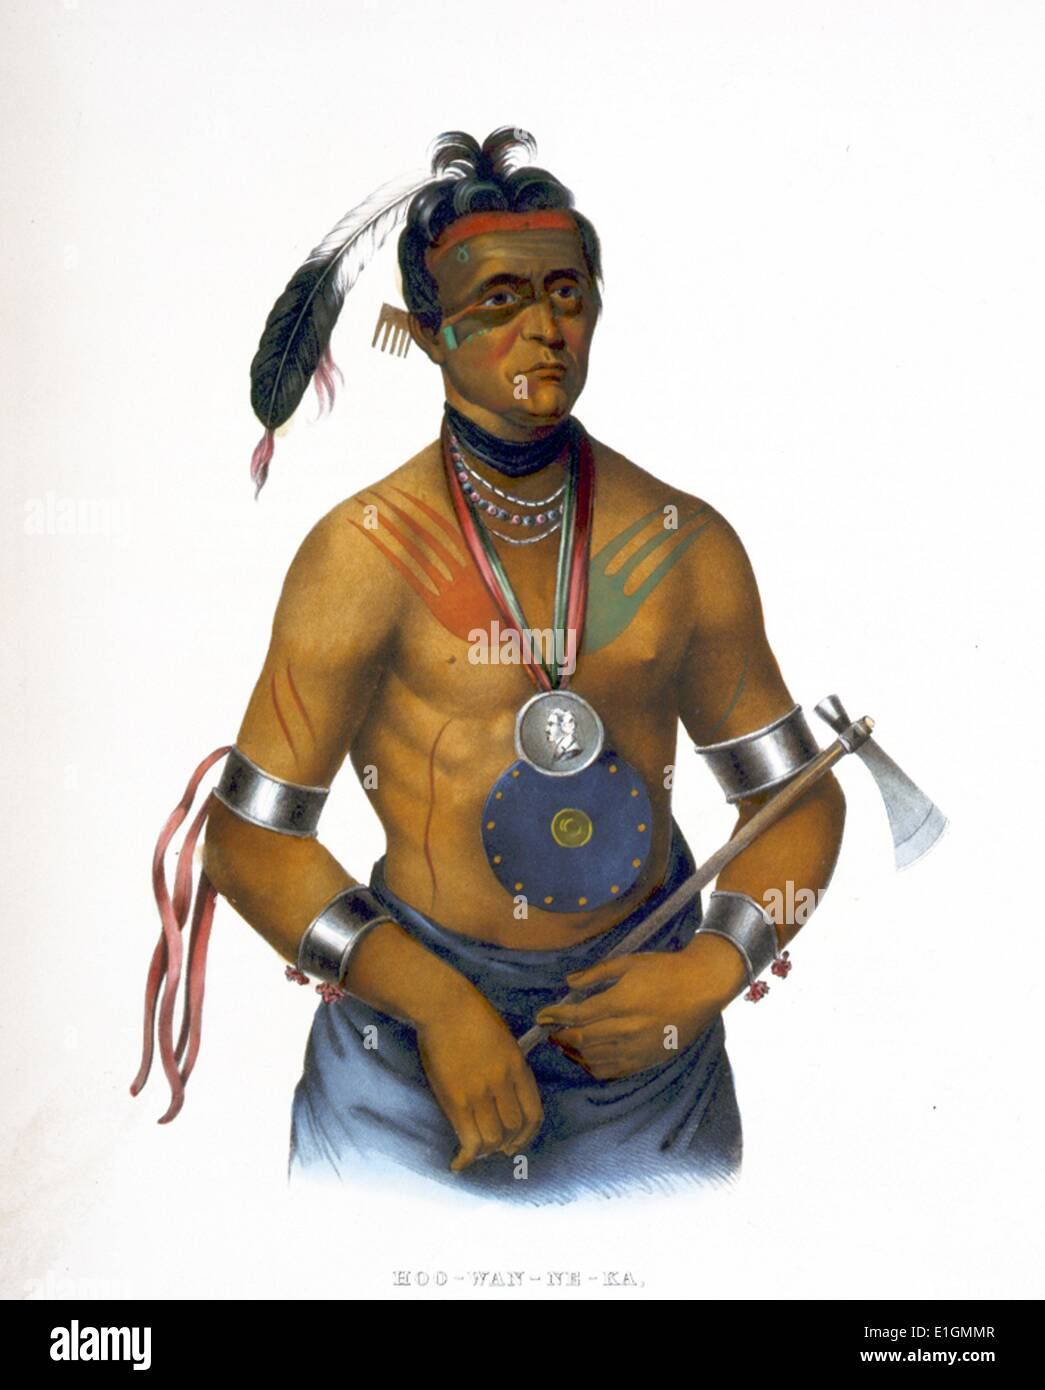 song of hiawatha text the song of hiawatha presented by the  song of hiawatha stock photos song of hiawatha stock images hiawatha aimed an arrow by frederic